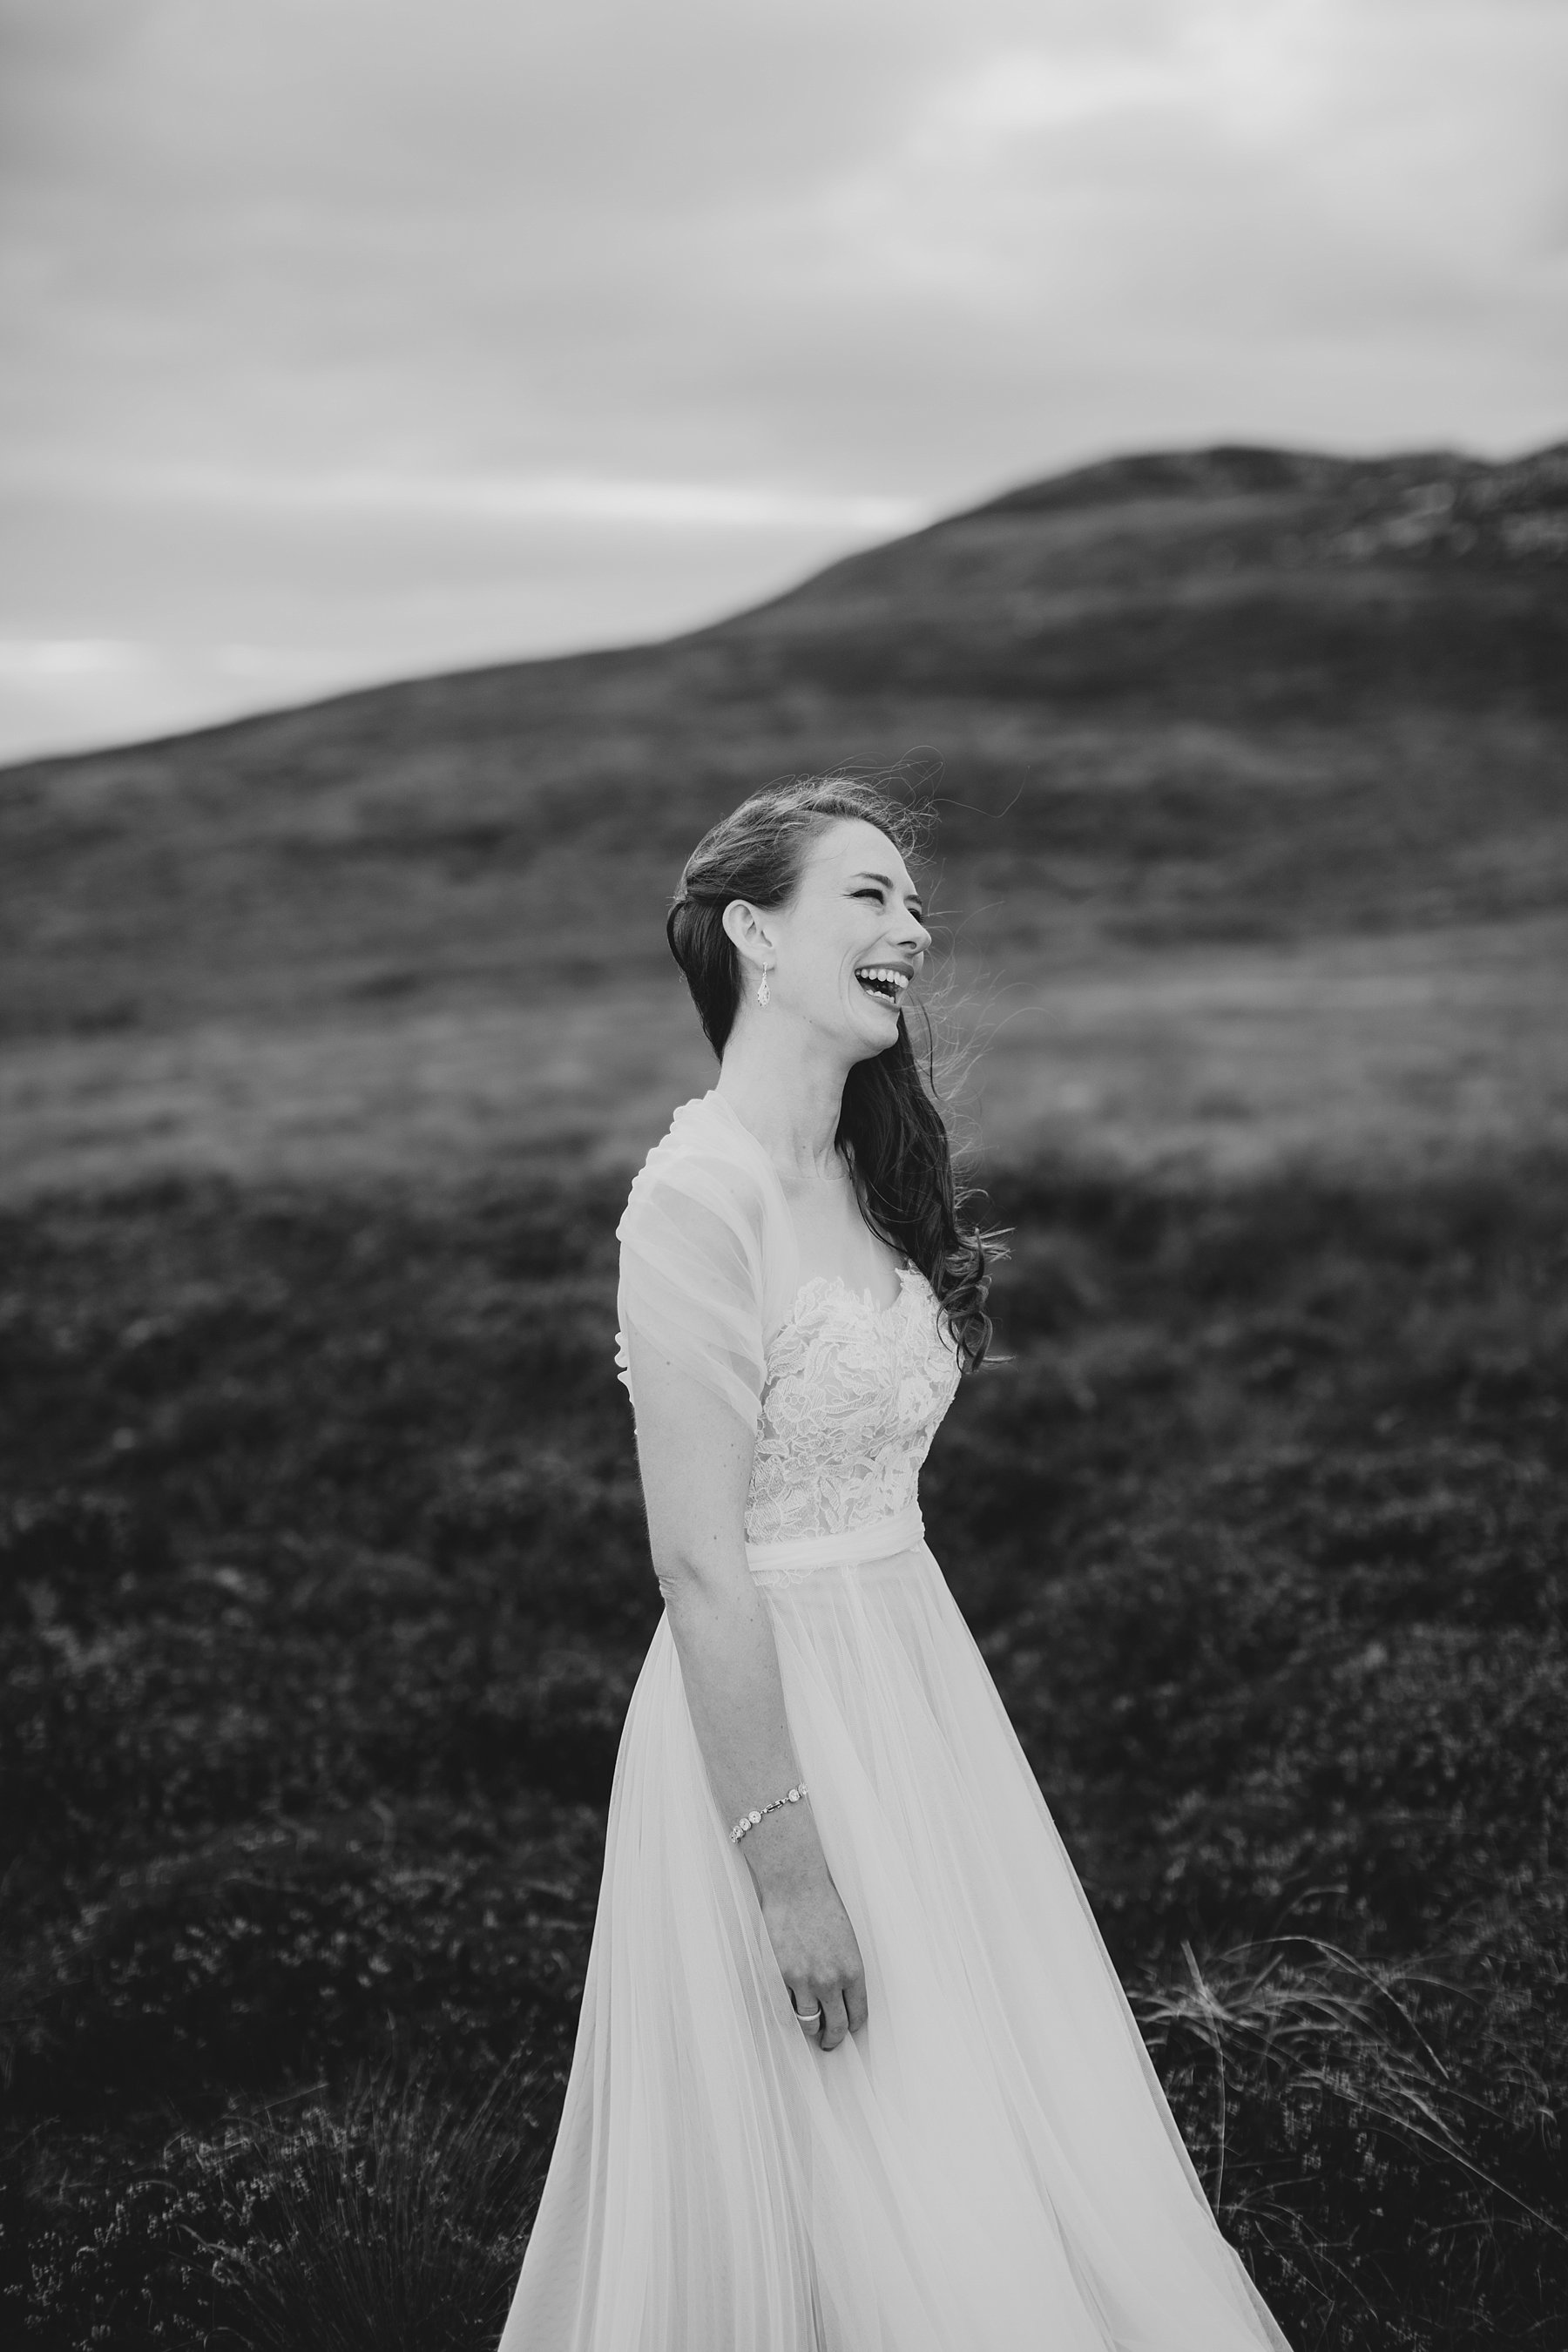 hornhead_donegak_elopement_weddings_0078